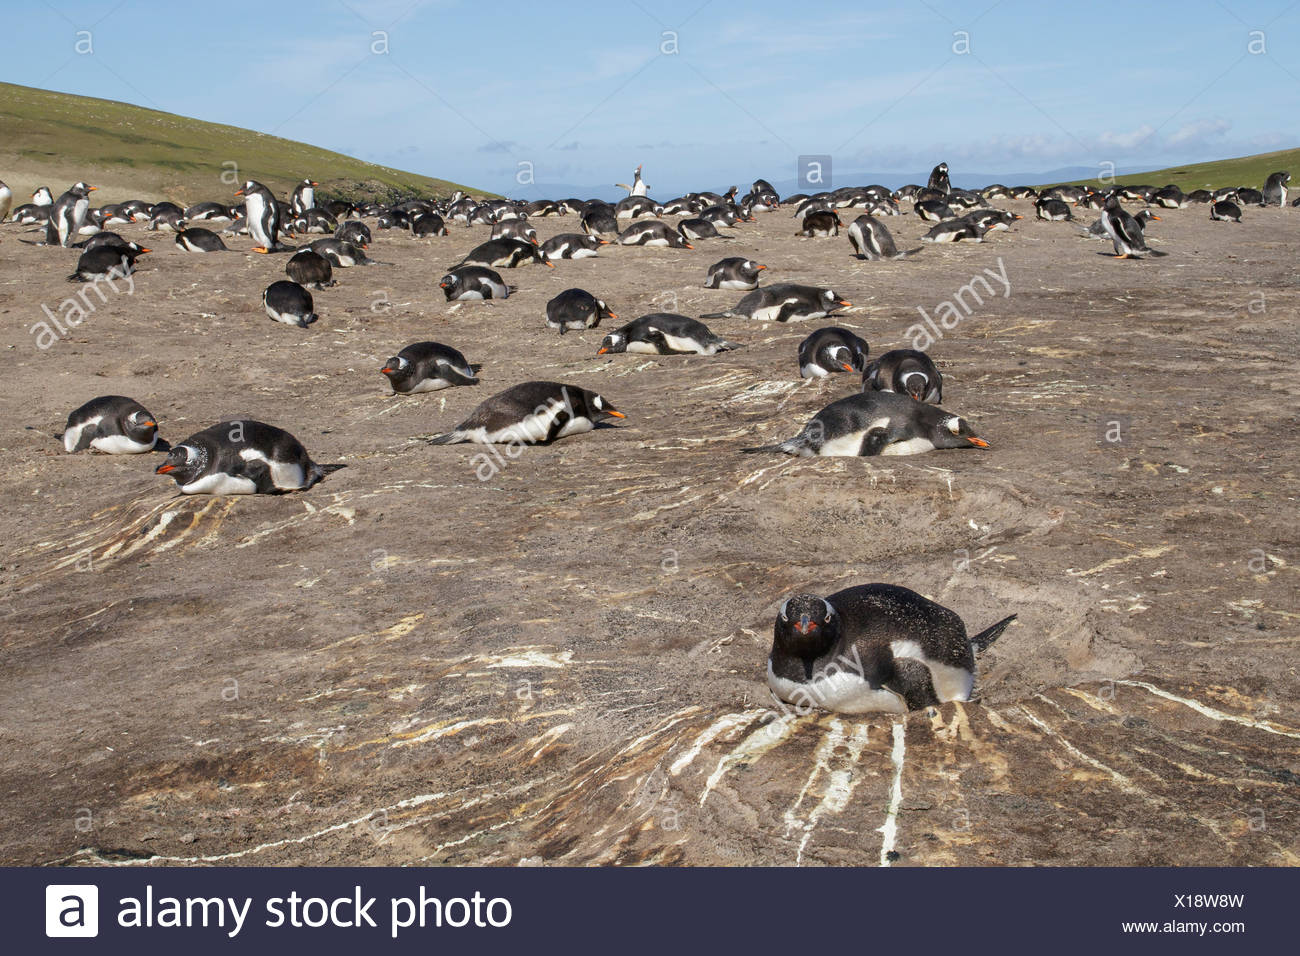 Gentoo Penguin (Pygoscelis papua) at its nesting colony in the Falkland Islands - Stock Image